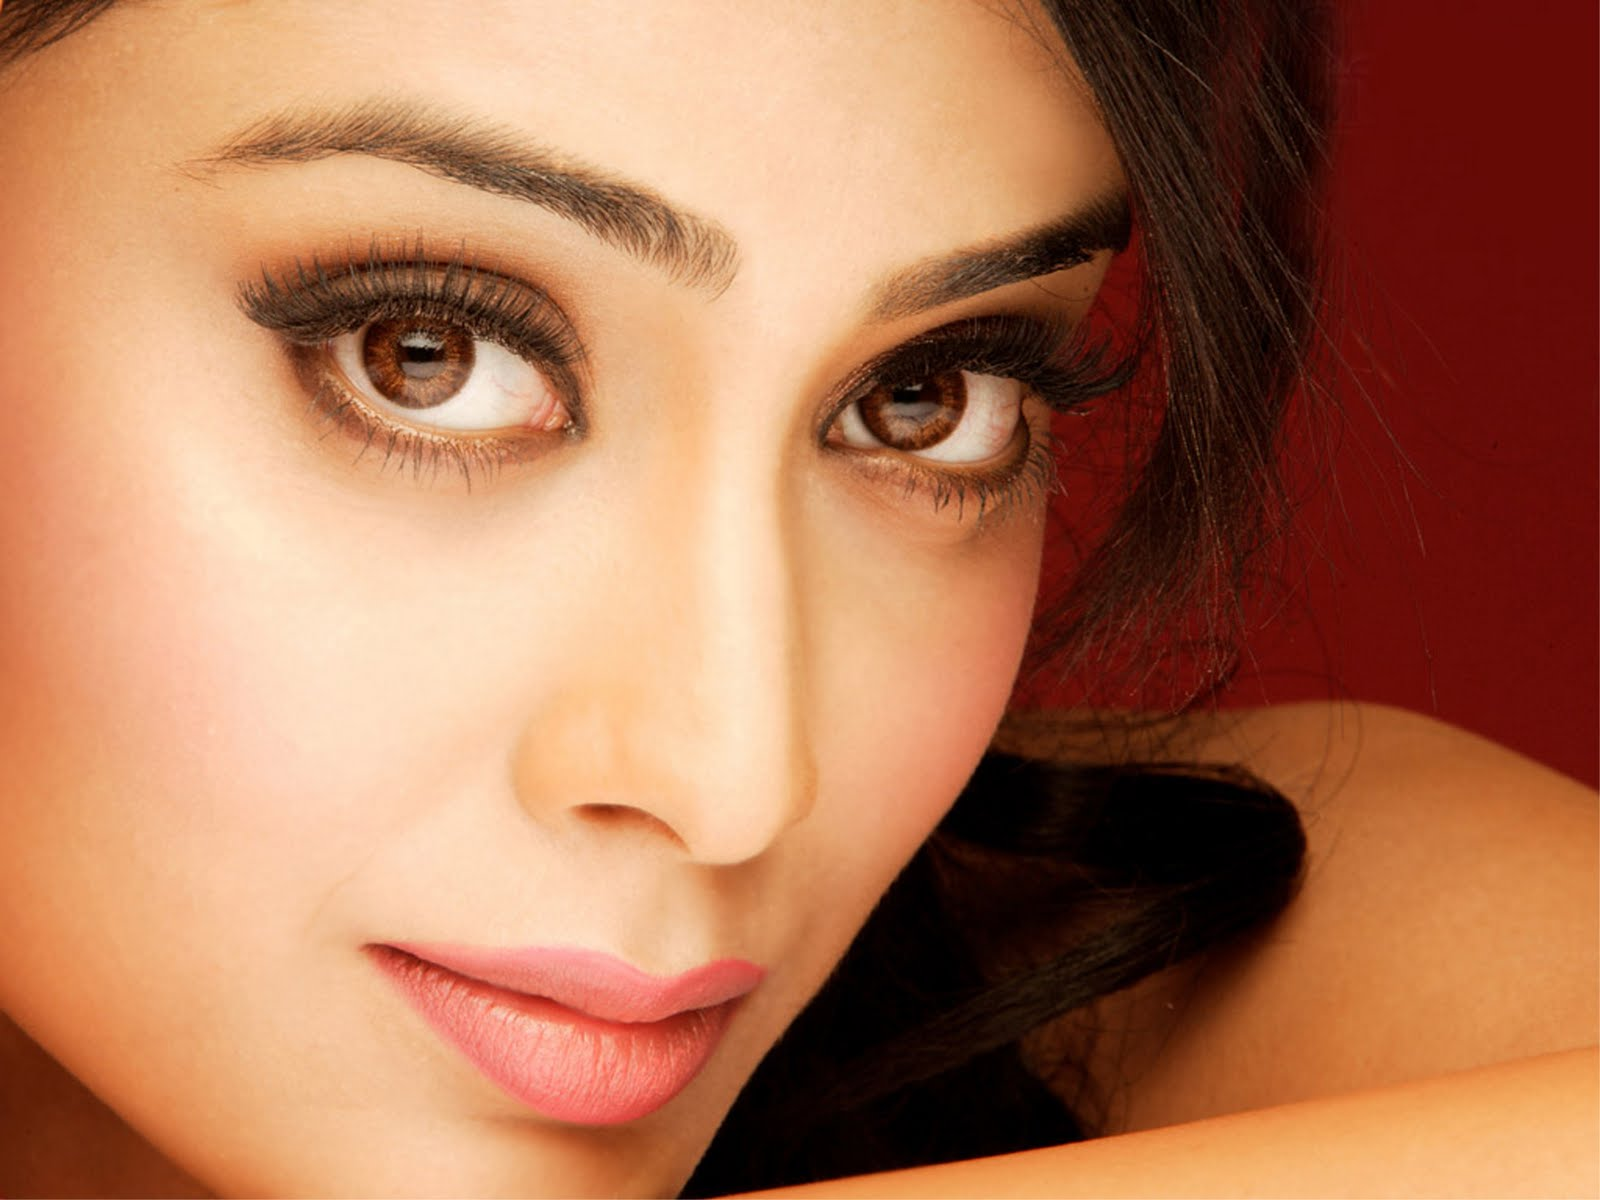 Shriya Saran Bollywood Actress New Pictures Images High Quality 1600x1200